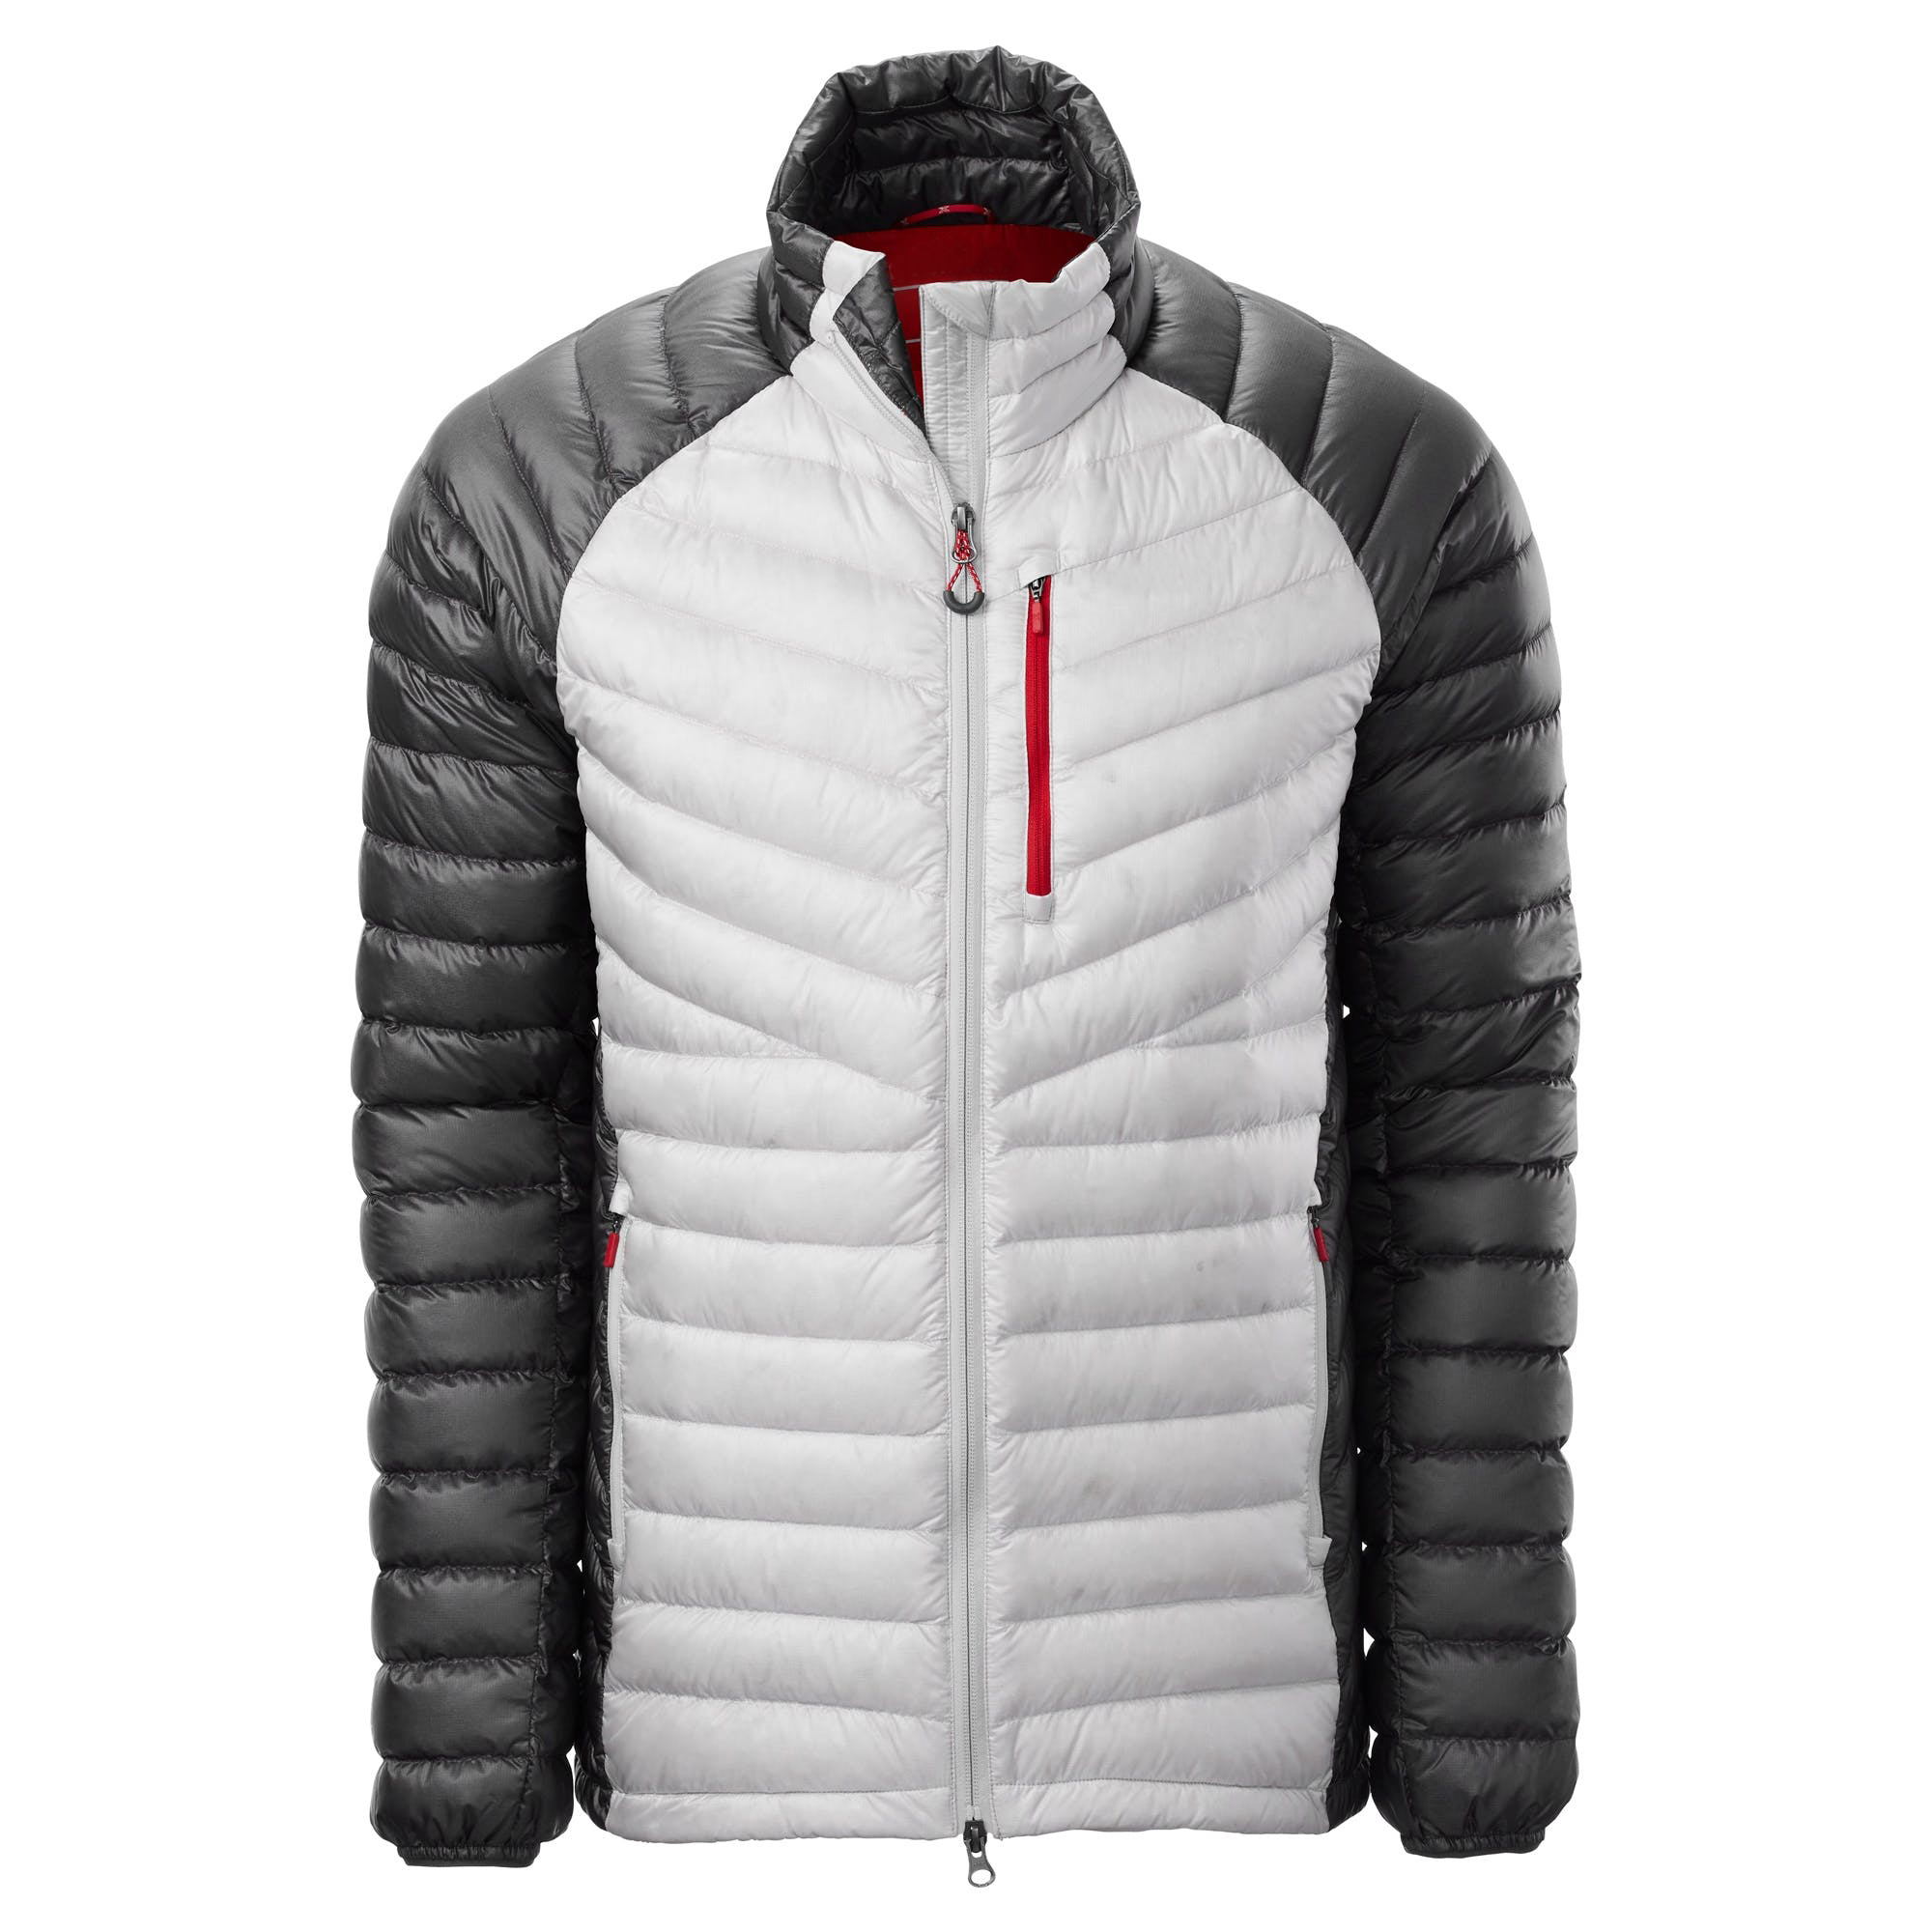 XT Ultralight Men's Down Jacket